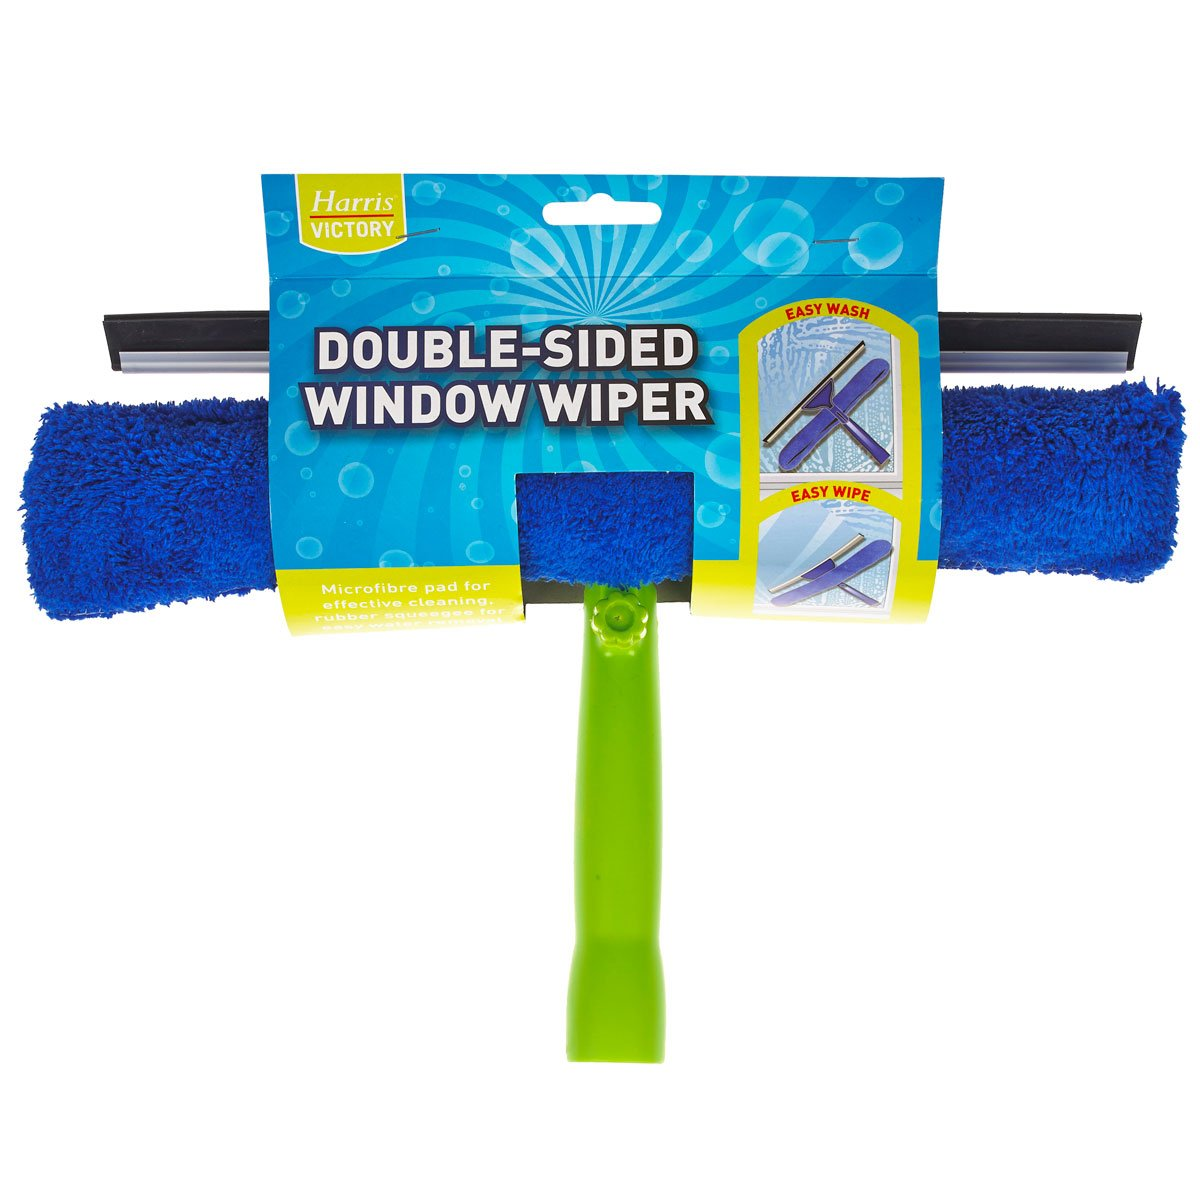 Harris DOUBLE SIDED GLASS WINDOW CLEANER CLEANING WIPER RUBBER BLADE SHOWER SCREEN WASH WASHER & WIPE MICROFIBRE PAD SQUEEGEE